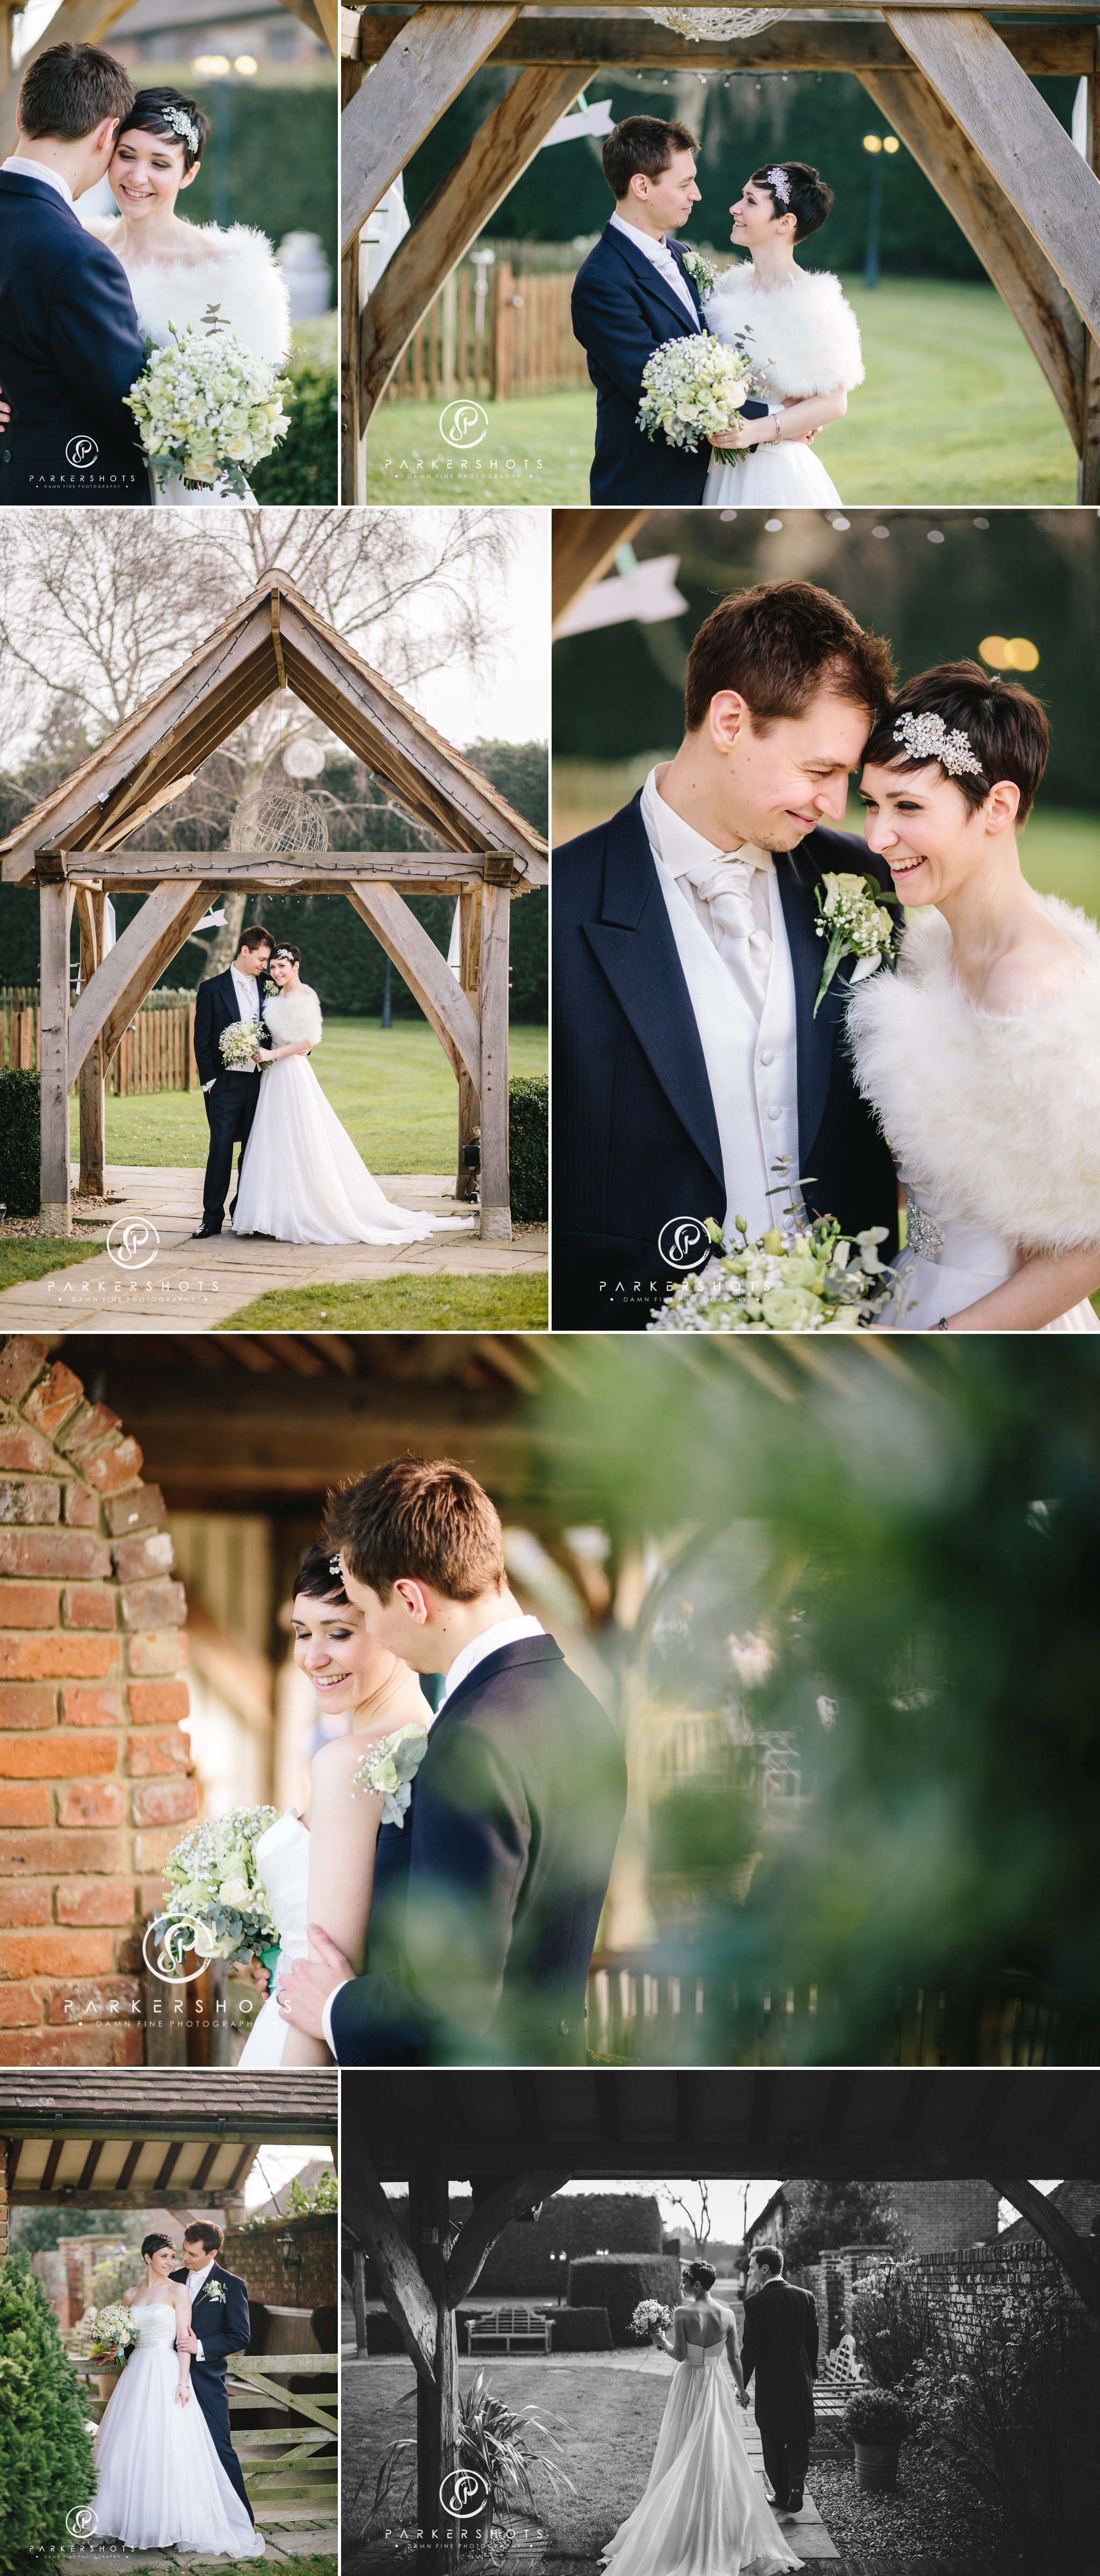 Portraits of bride and groom at Winters Barns